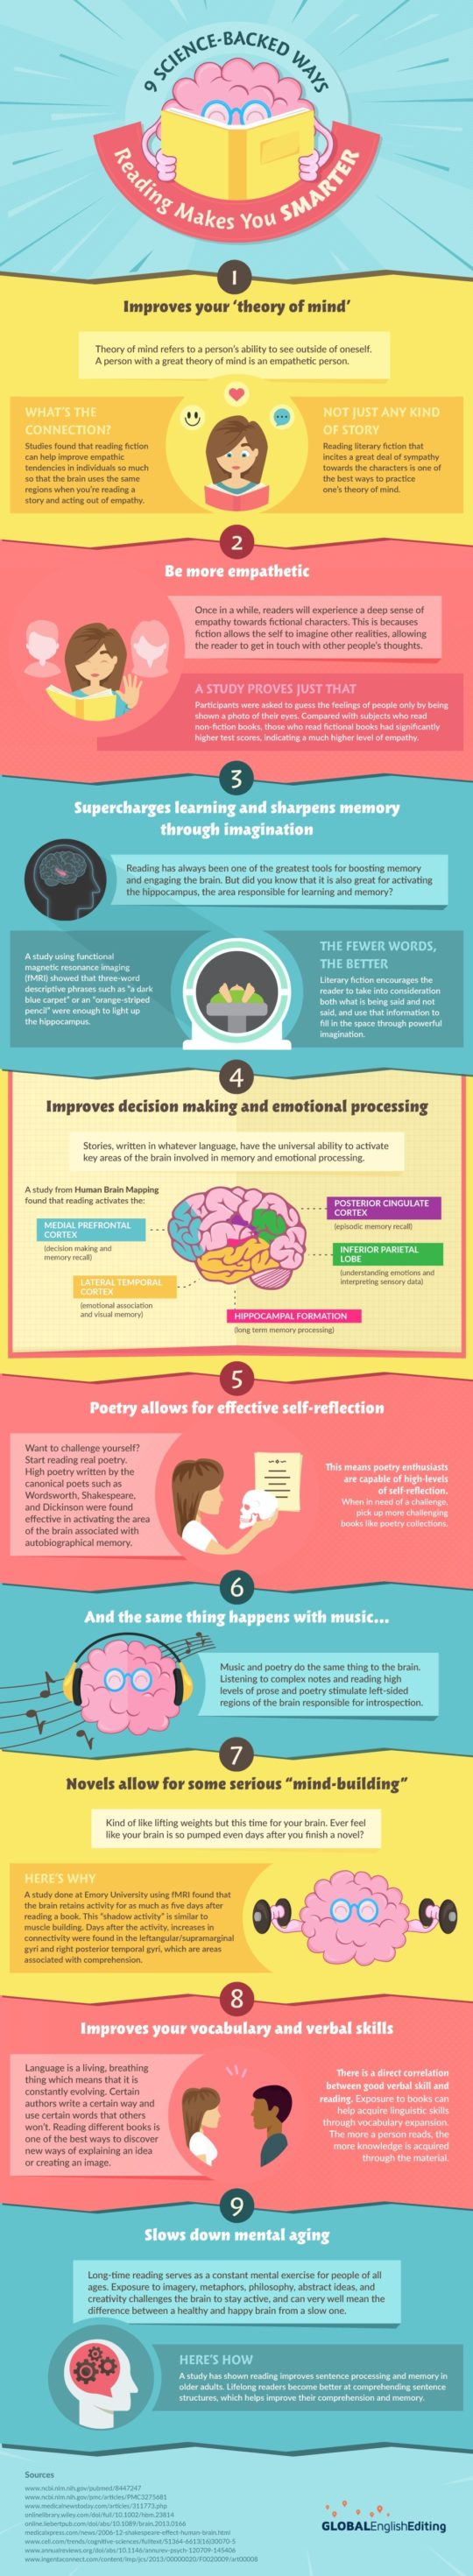 Science-backed ways reading makes you smarter and better #infographic